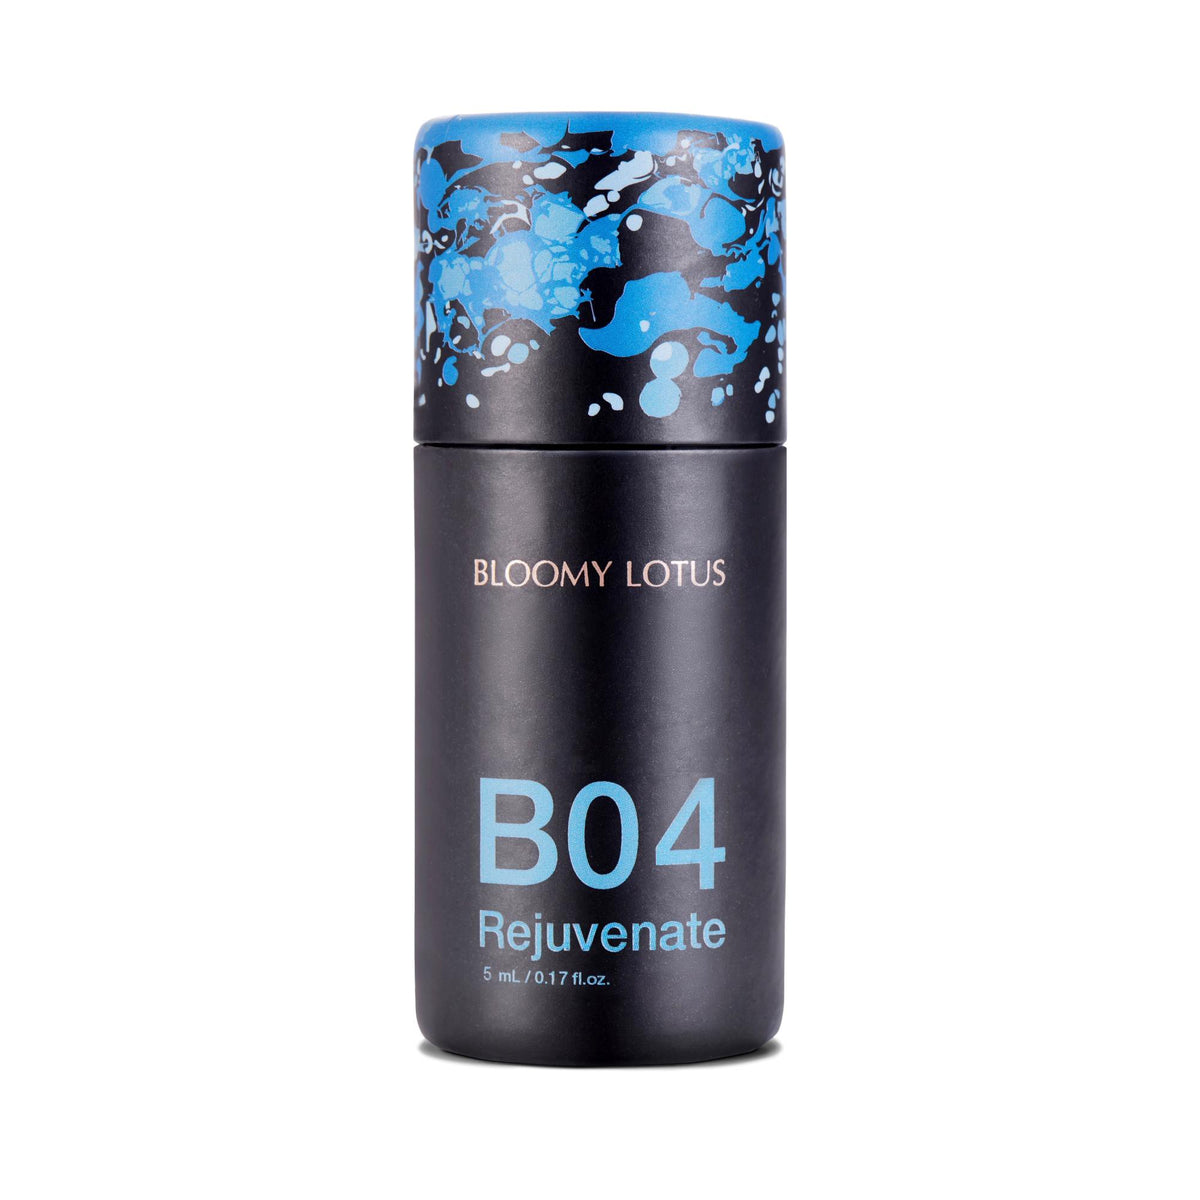 Bloomy Lotus B04 Rejuvenate Essential Oil, 5 ml